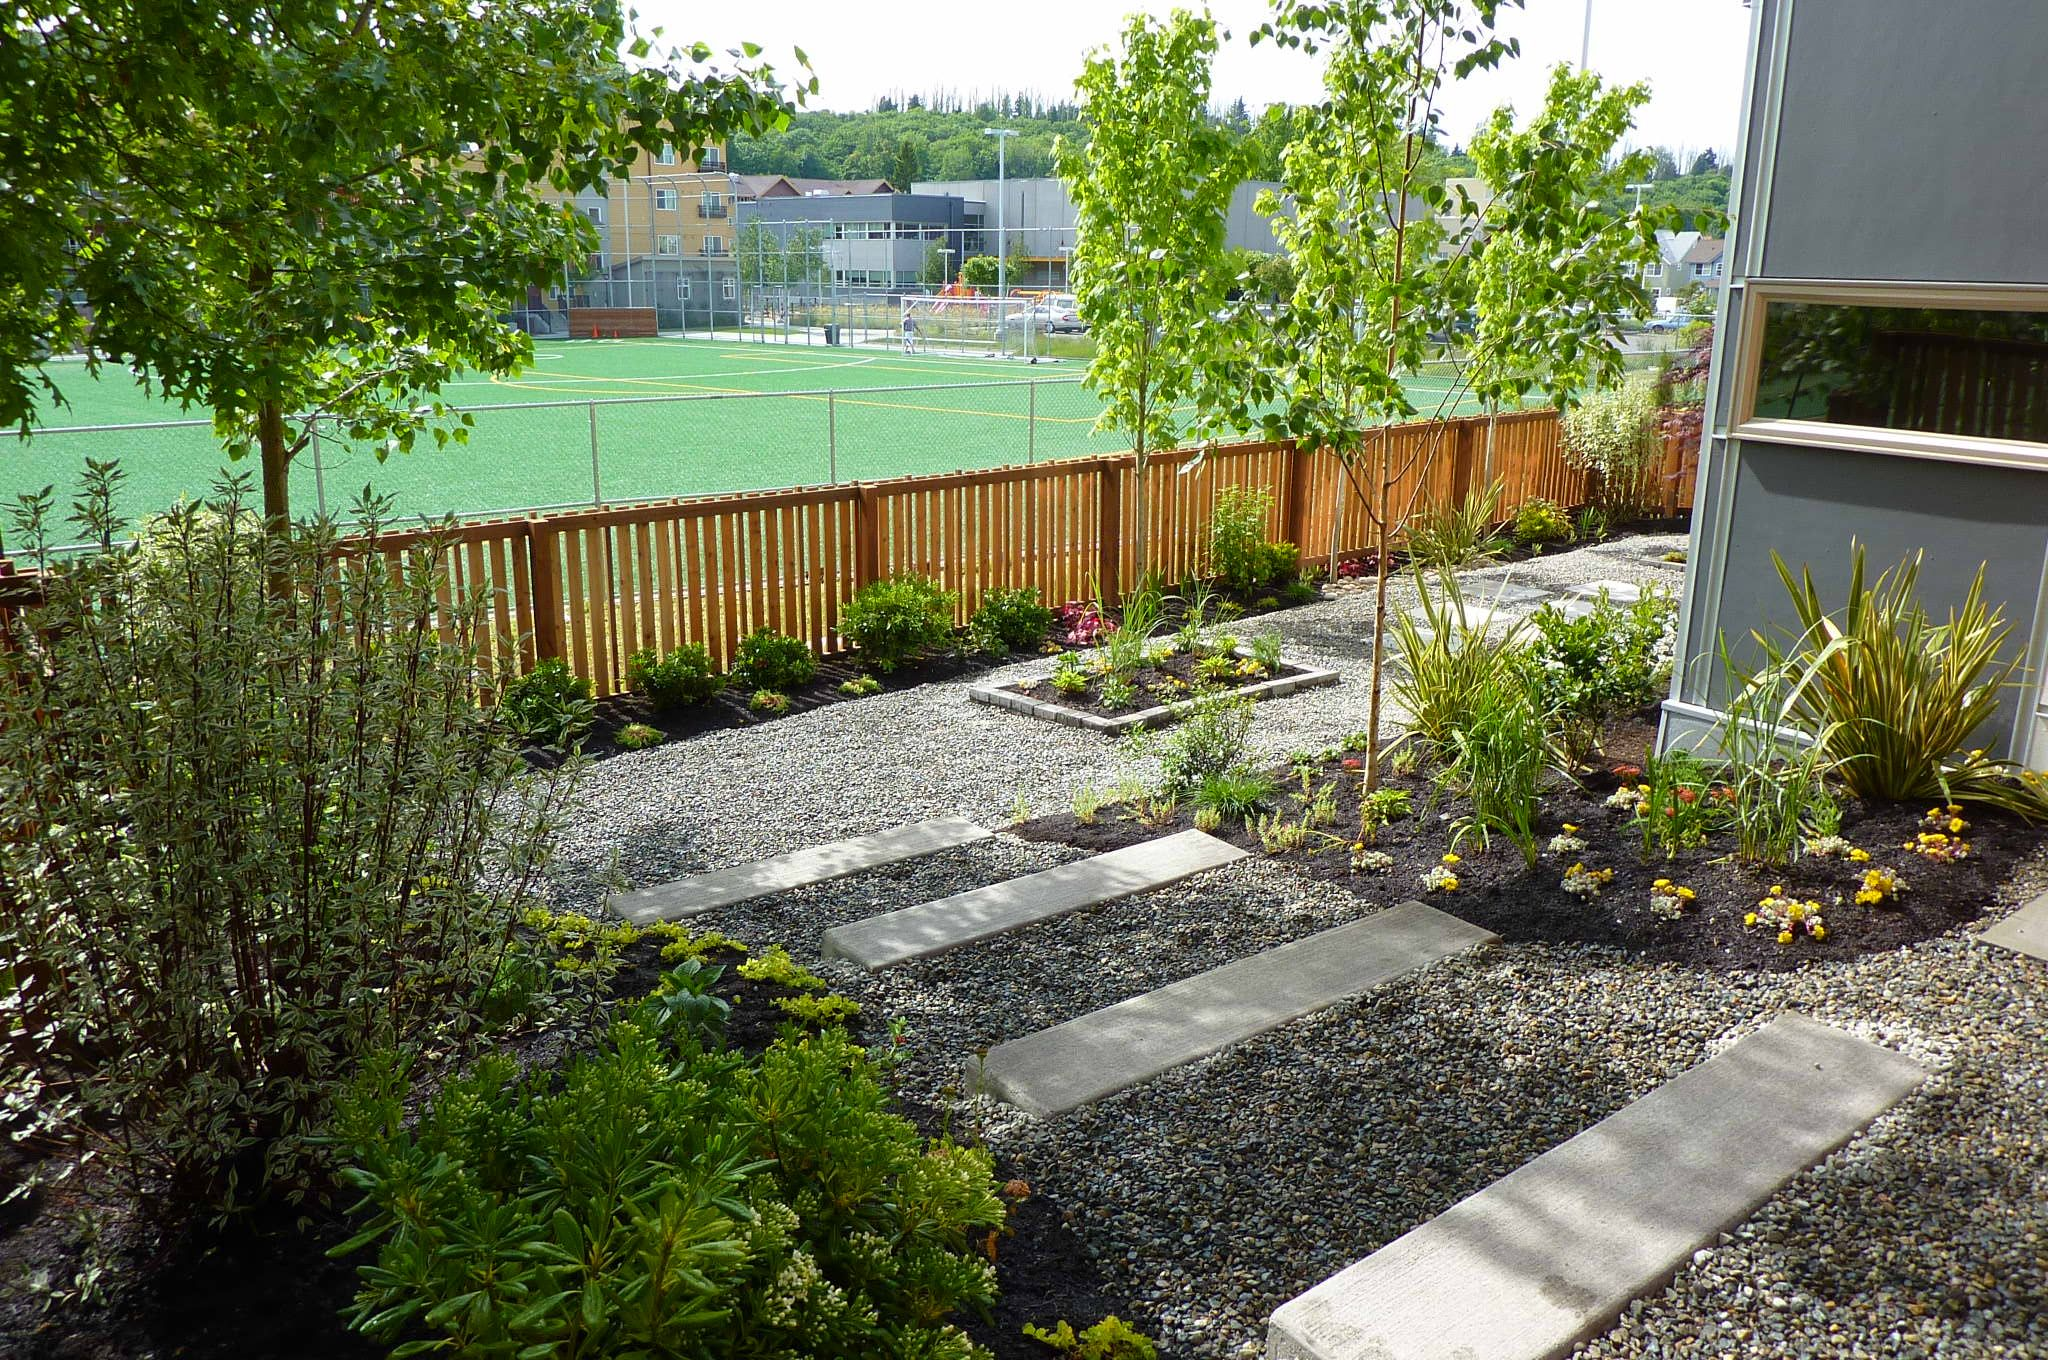 Gravel Landscaping Front Yard Ideas | Daily Updates Home ... on Gravel Front Yard Ideas id=77830